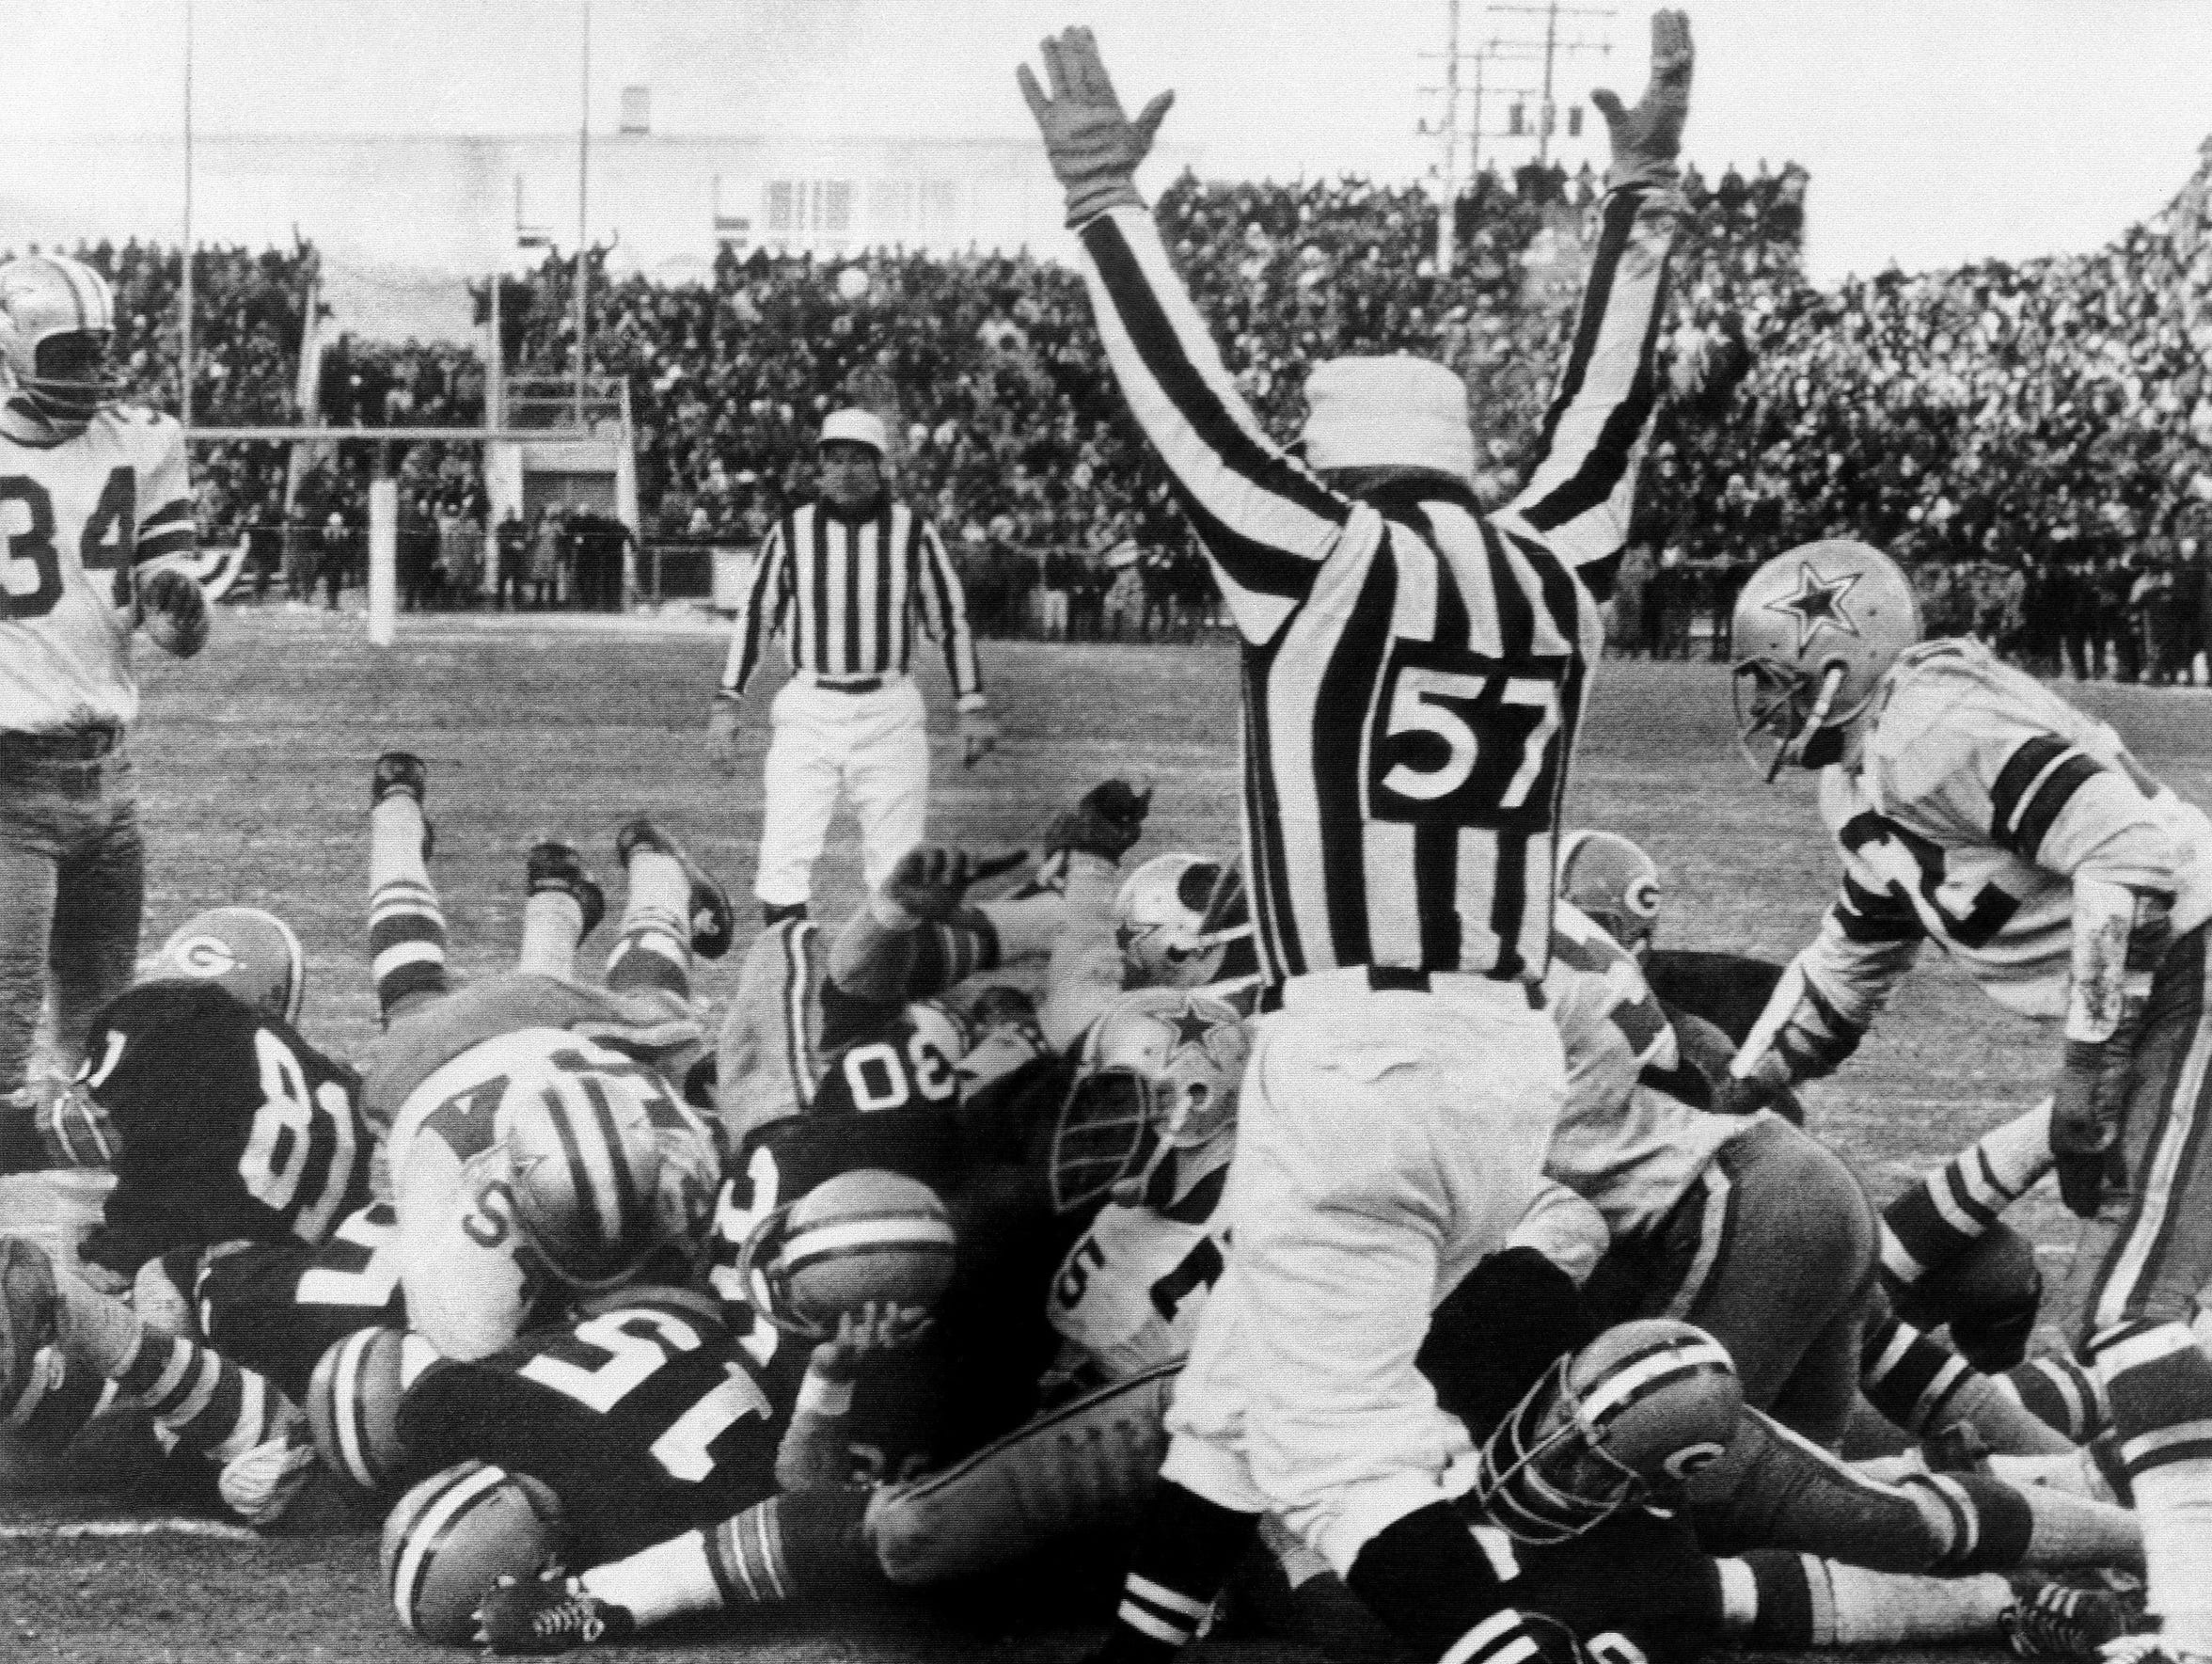 Bart Starr (15) sneaks into the end zone for the winning touchdown in the Green Bay Packers' 21-17 victory over the Dallas Cowboys in the 1967 NFL Championship Game, better known as the Ice Bowl, on Dec. 31, 1967 at Lambeau Field.